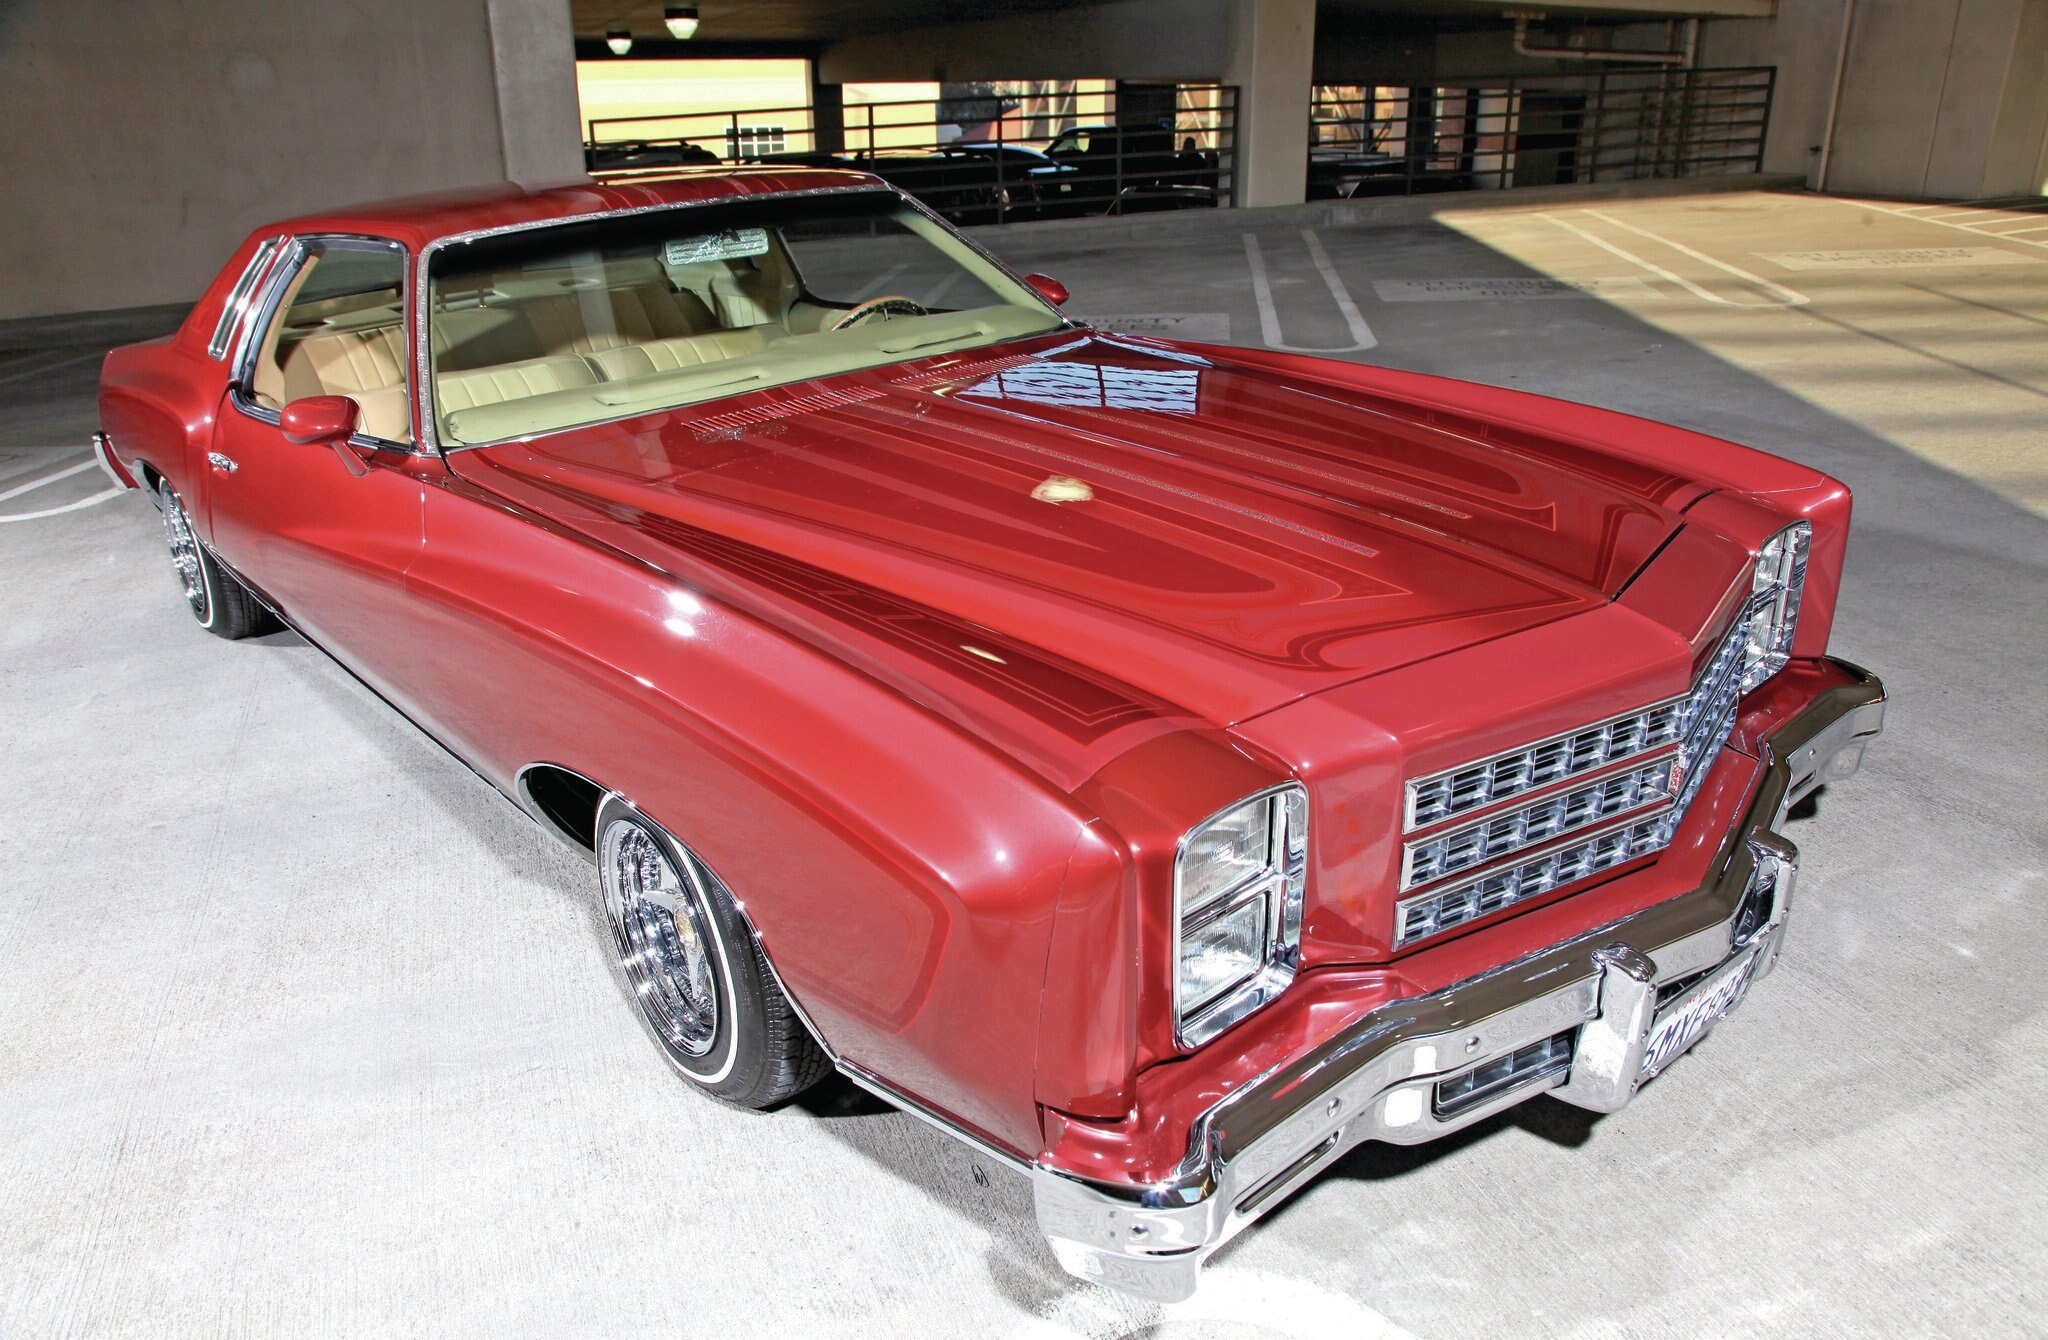 1976-chevrolet-monte-carlo-passenger-side-front-view-021